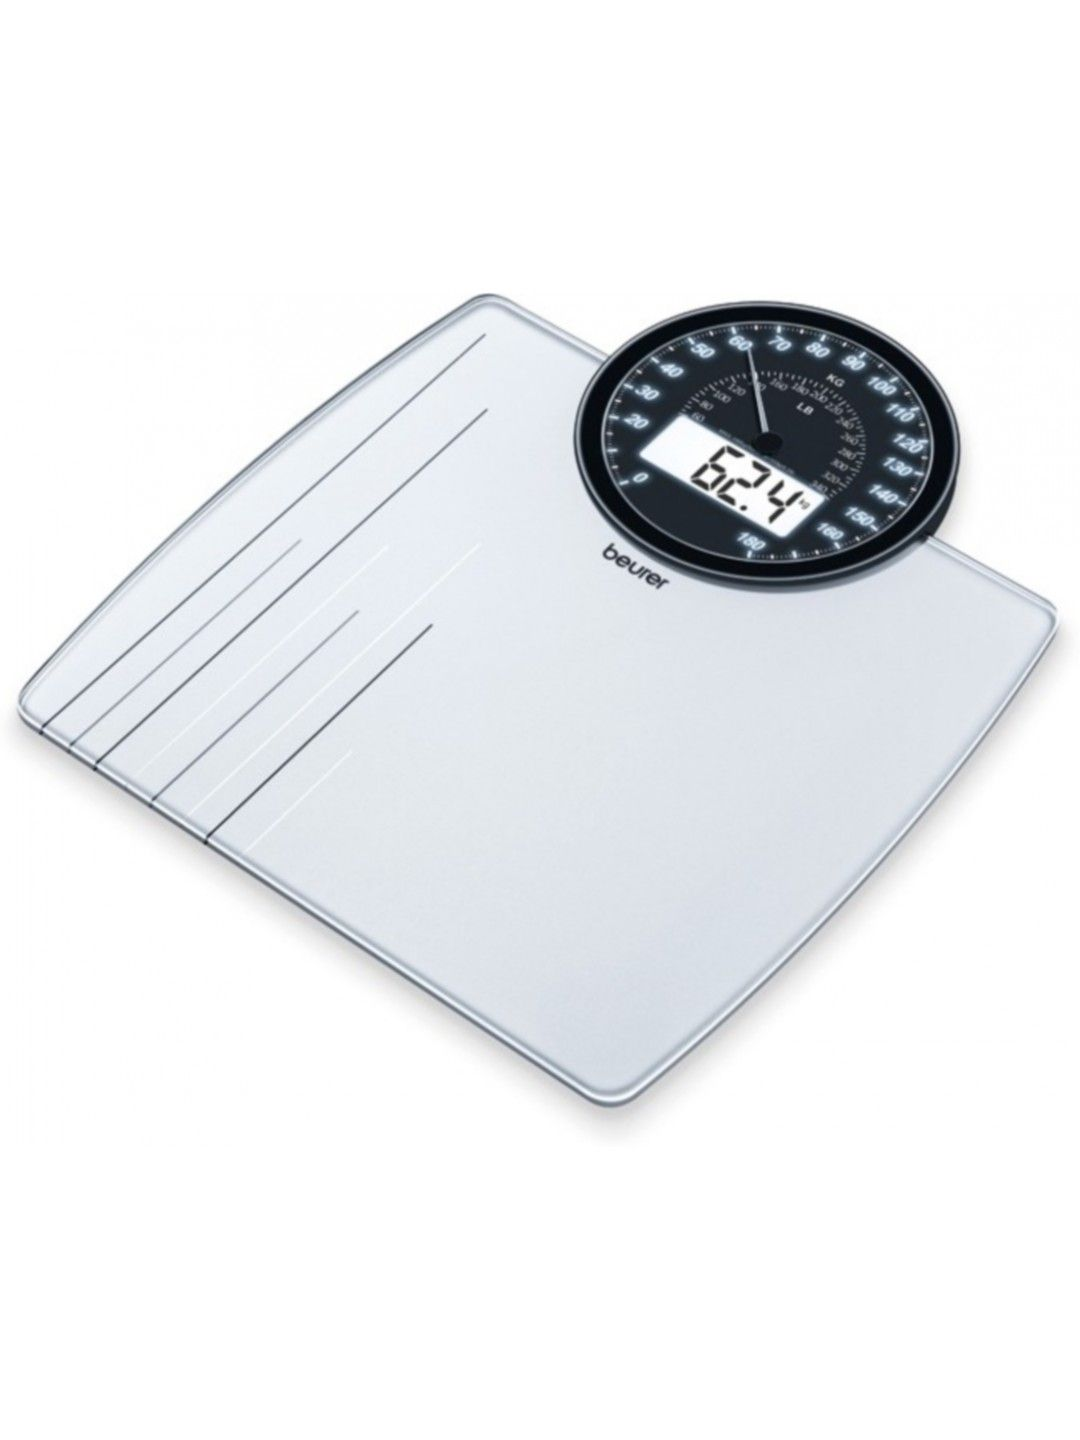 Beurer Analogue Digital Dual Display Weighing Scale Buy Online - Large display digital bathroom scales for bathroom decor ideas